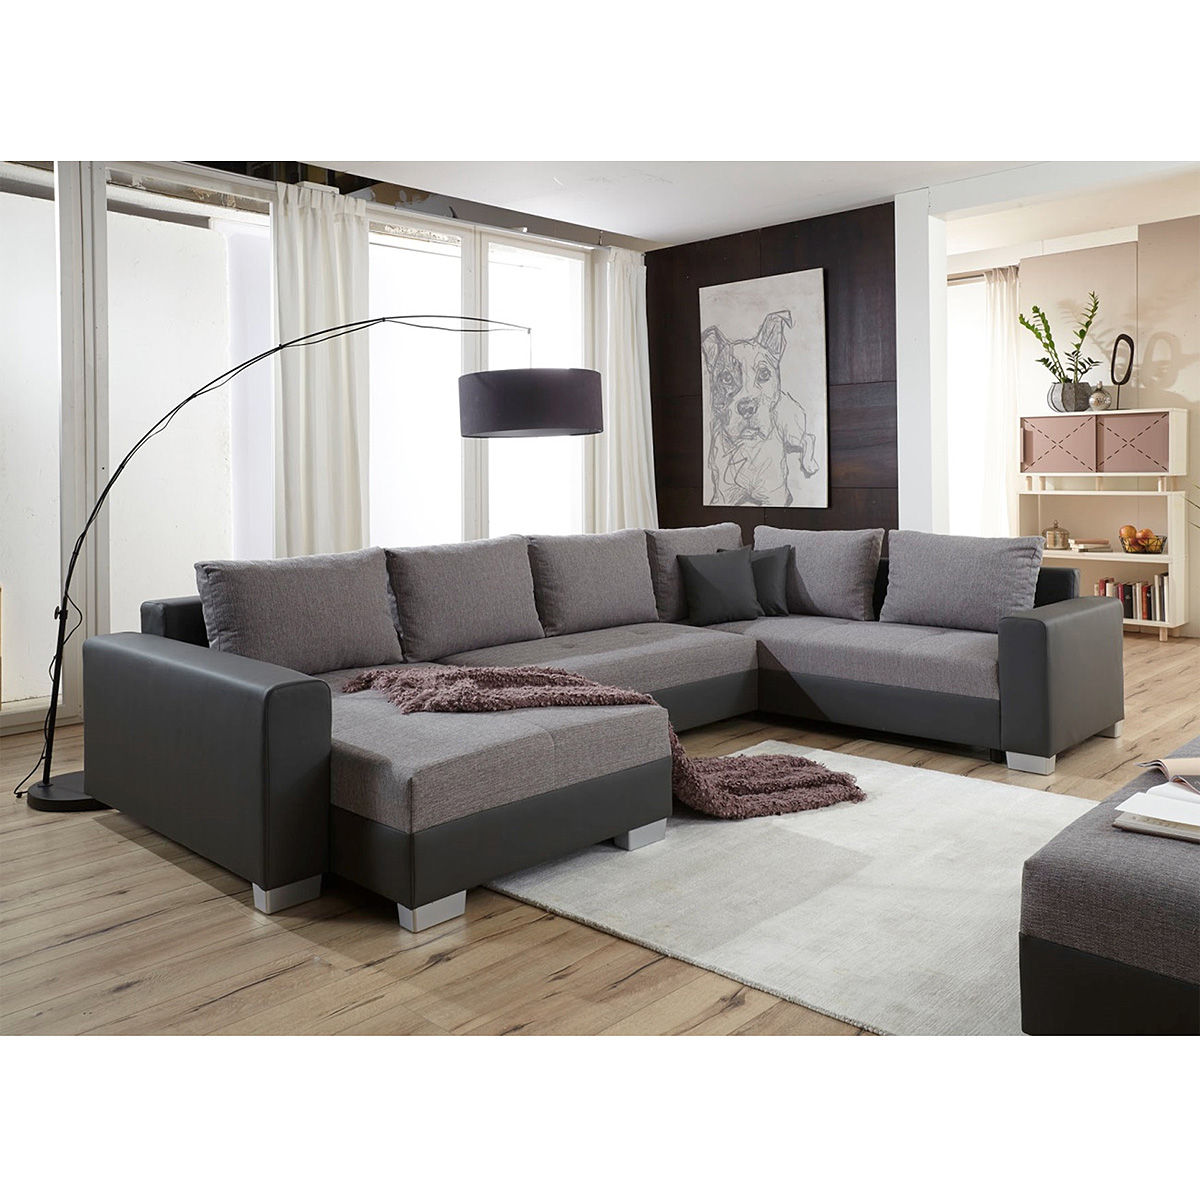 wohnlandschaft largas ecksofa sofa in schwarz und grau schlaffunktion ebay. Black Bedroom Furniture Sets. Home Design Ideas